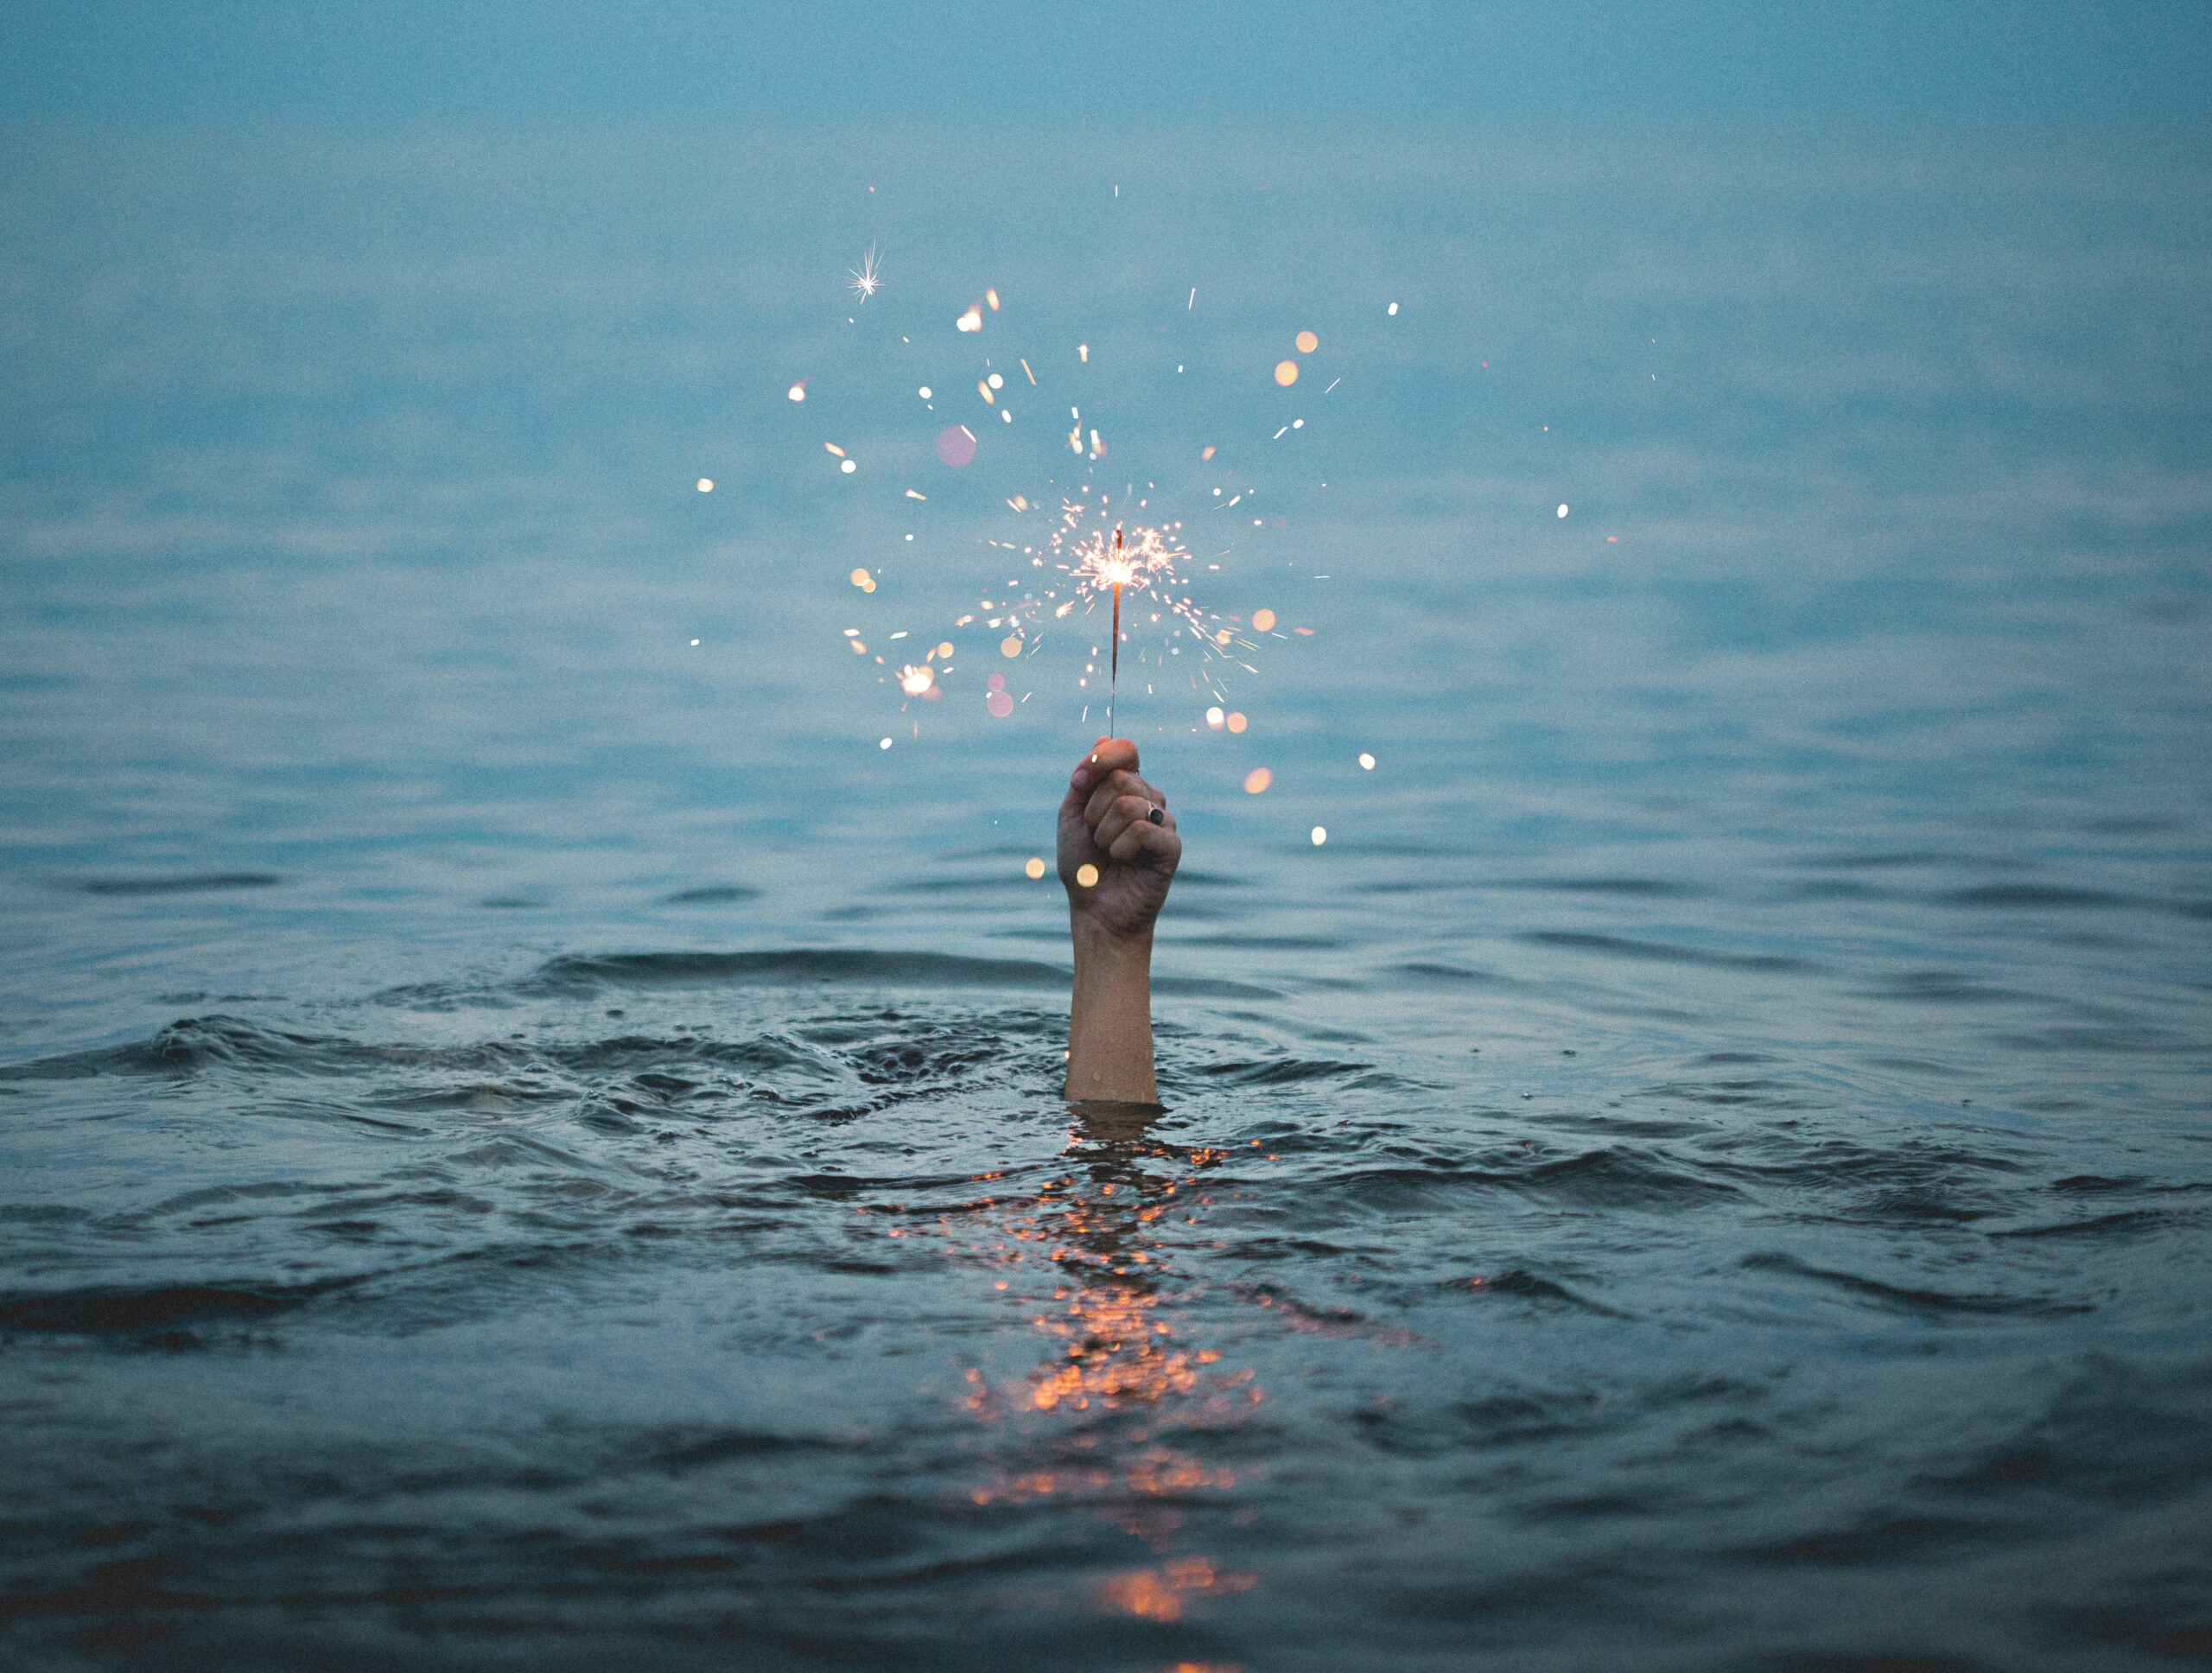 A hand holding a lit sparkler rises from a pool of water.